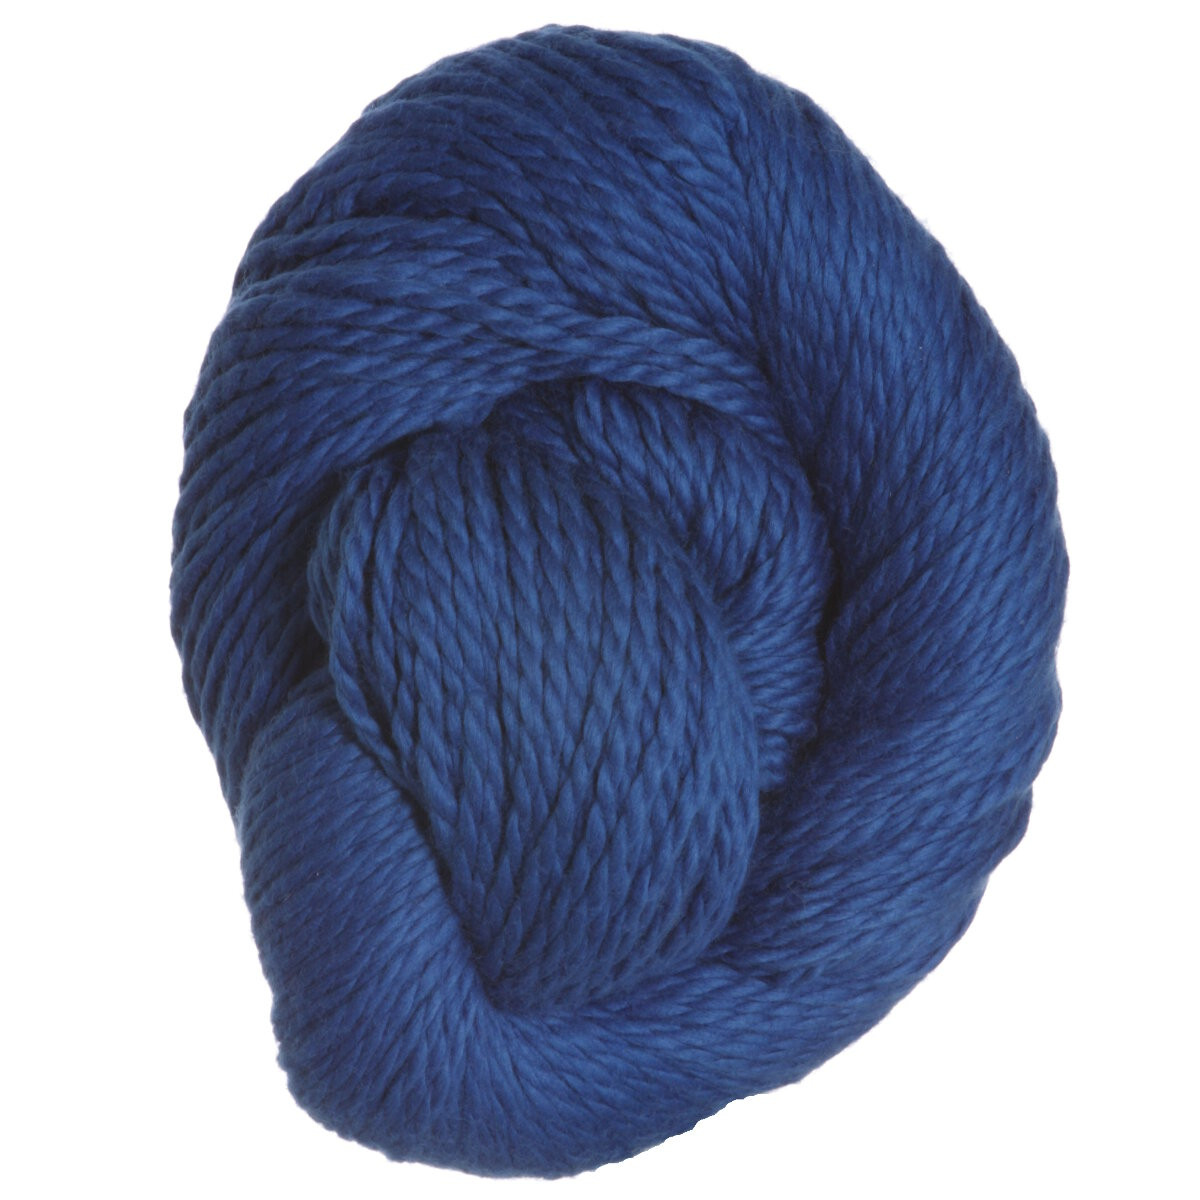 Blue Sky Yarn Luxury Blue Sky Fibers organic Cotton Yarn 632 Mediterranean Of Delightful 42 Ideas Blue Sky Yarn